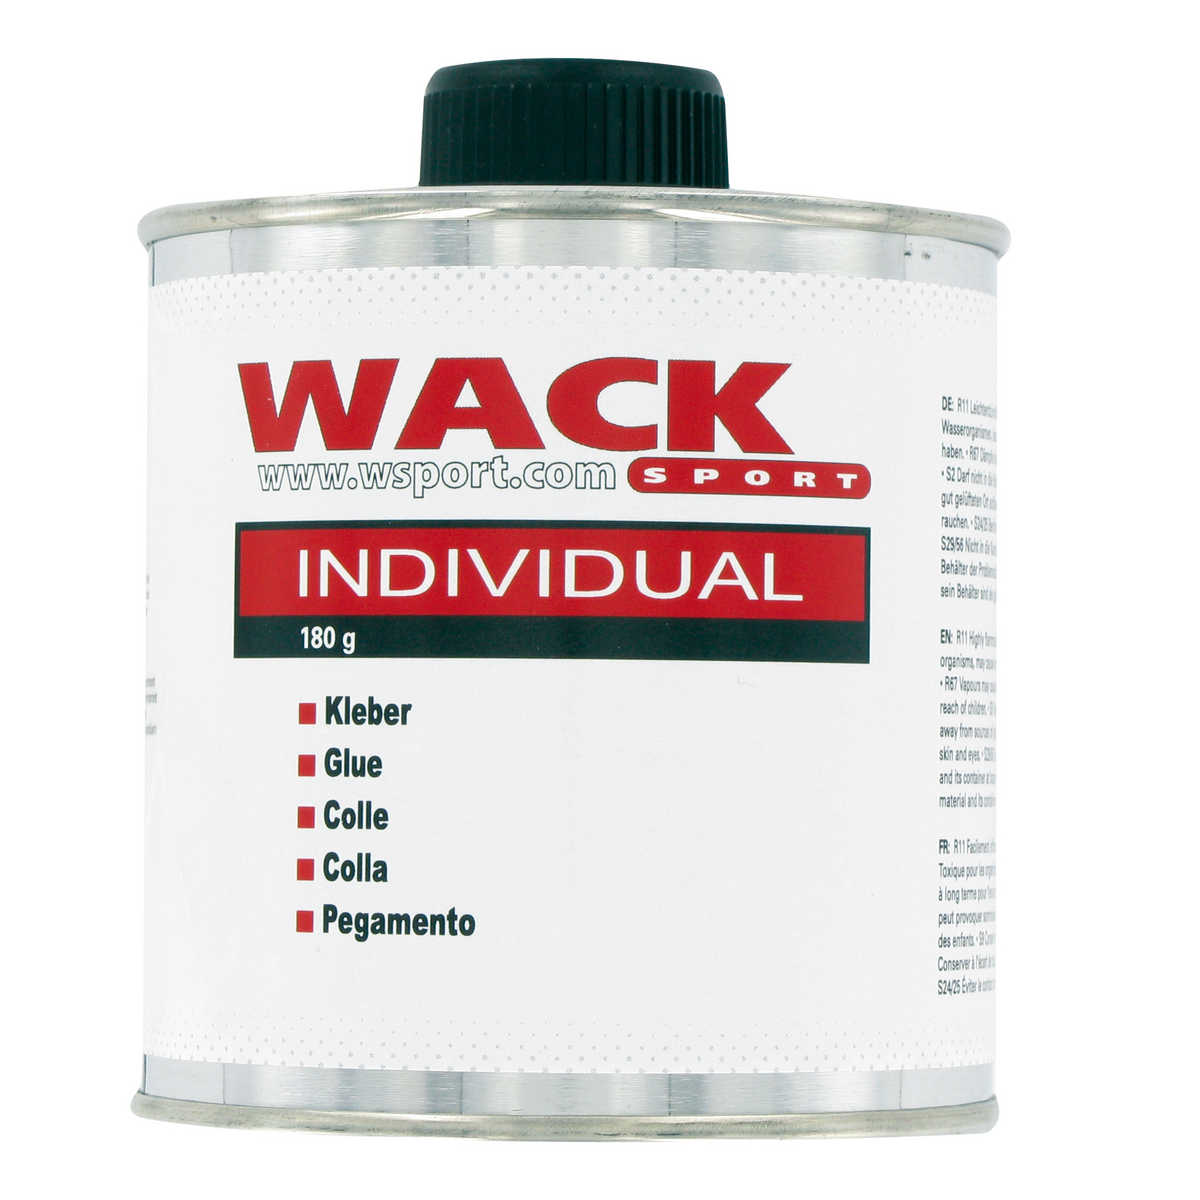 Wack Sport Tennis De Table Divers Tennis De Table Colle Wack Sport Individual 180 Ml Wack